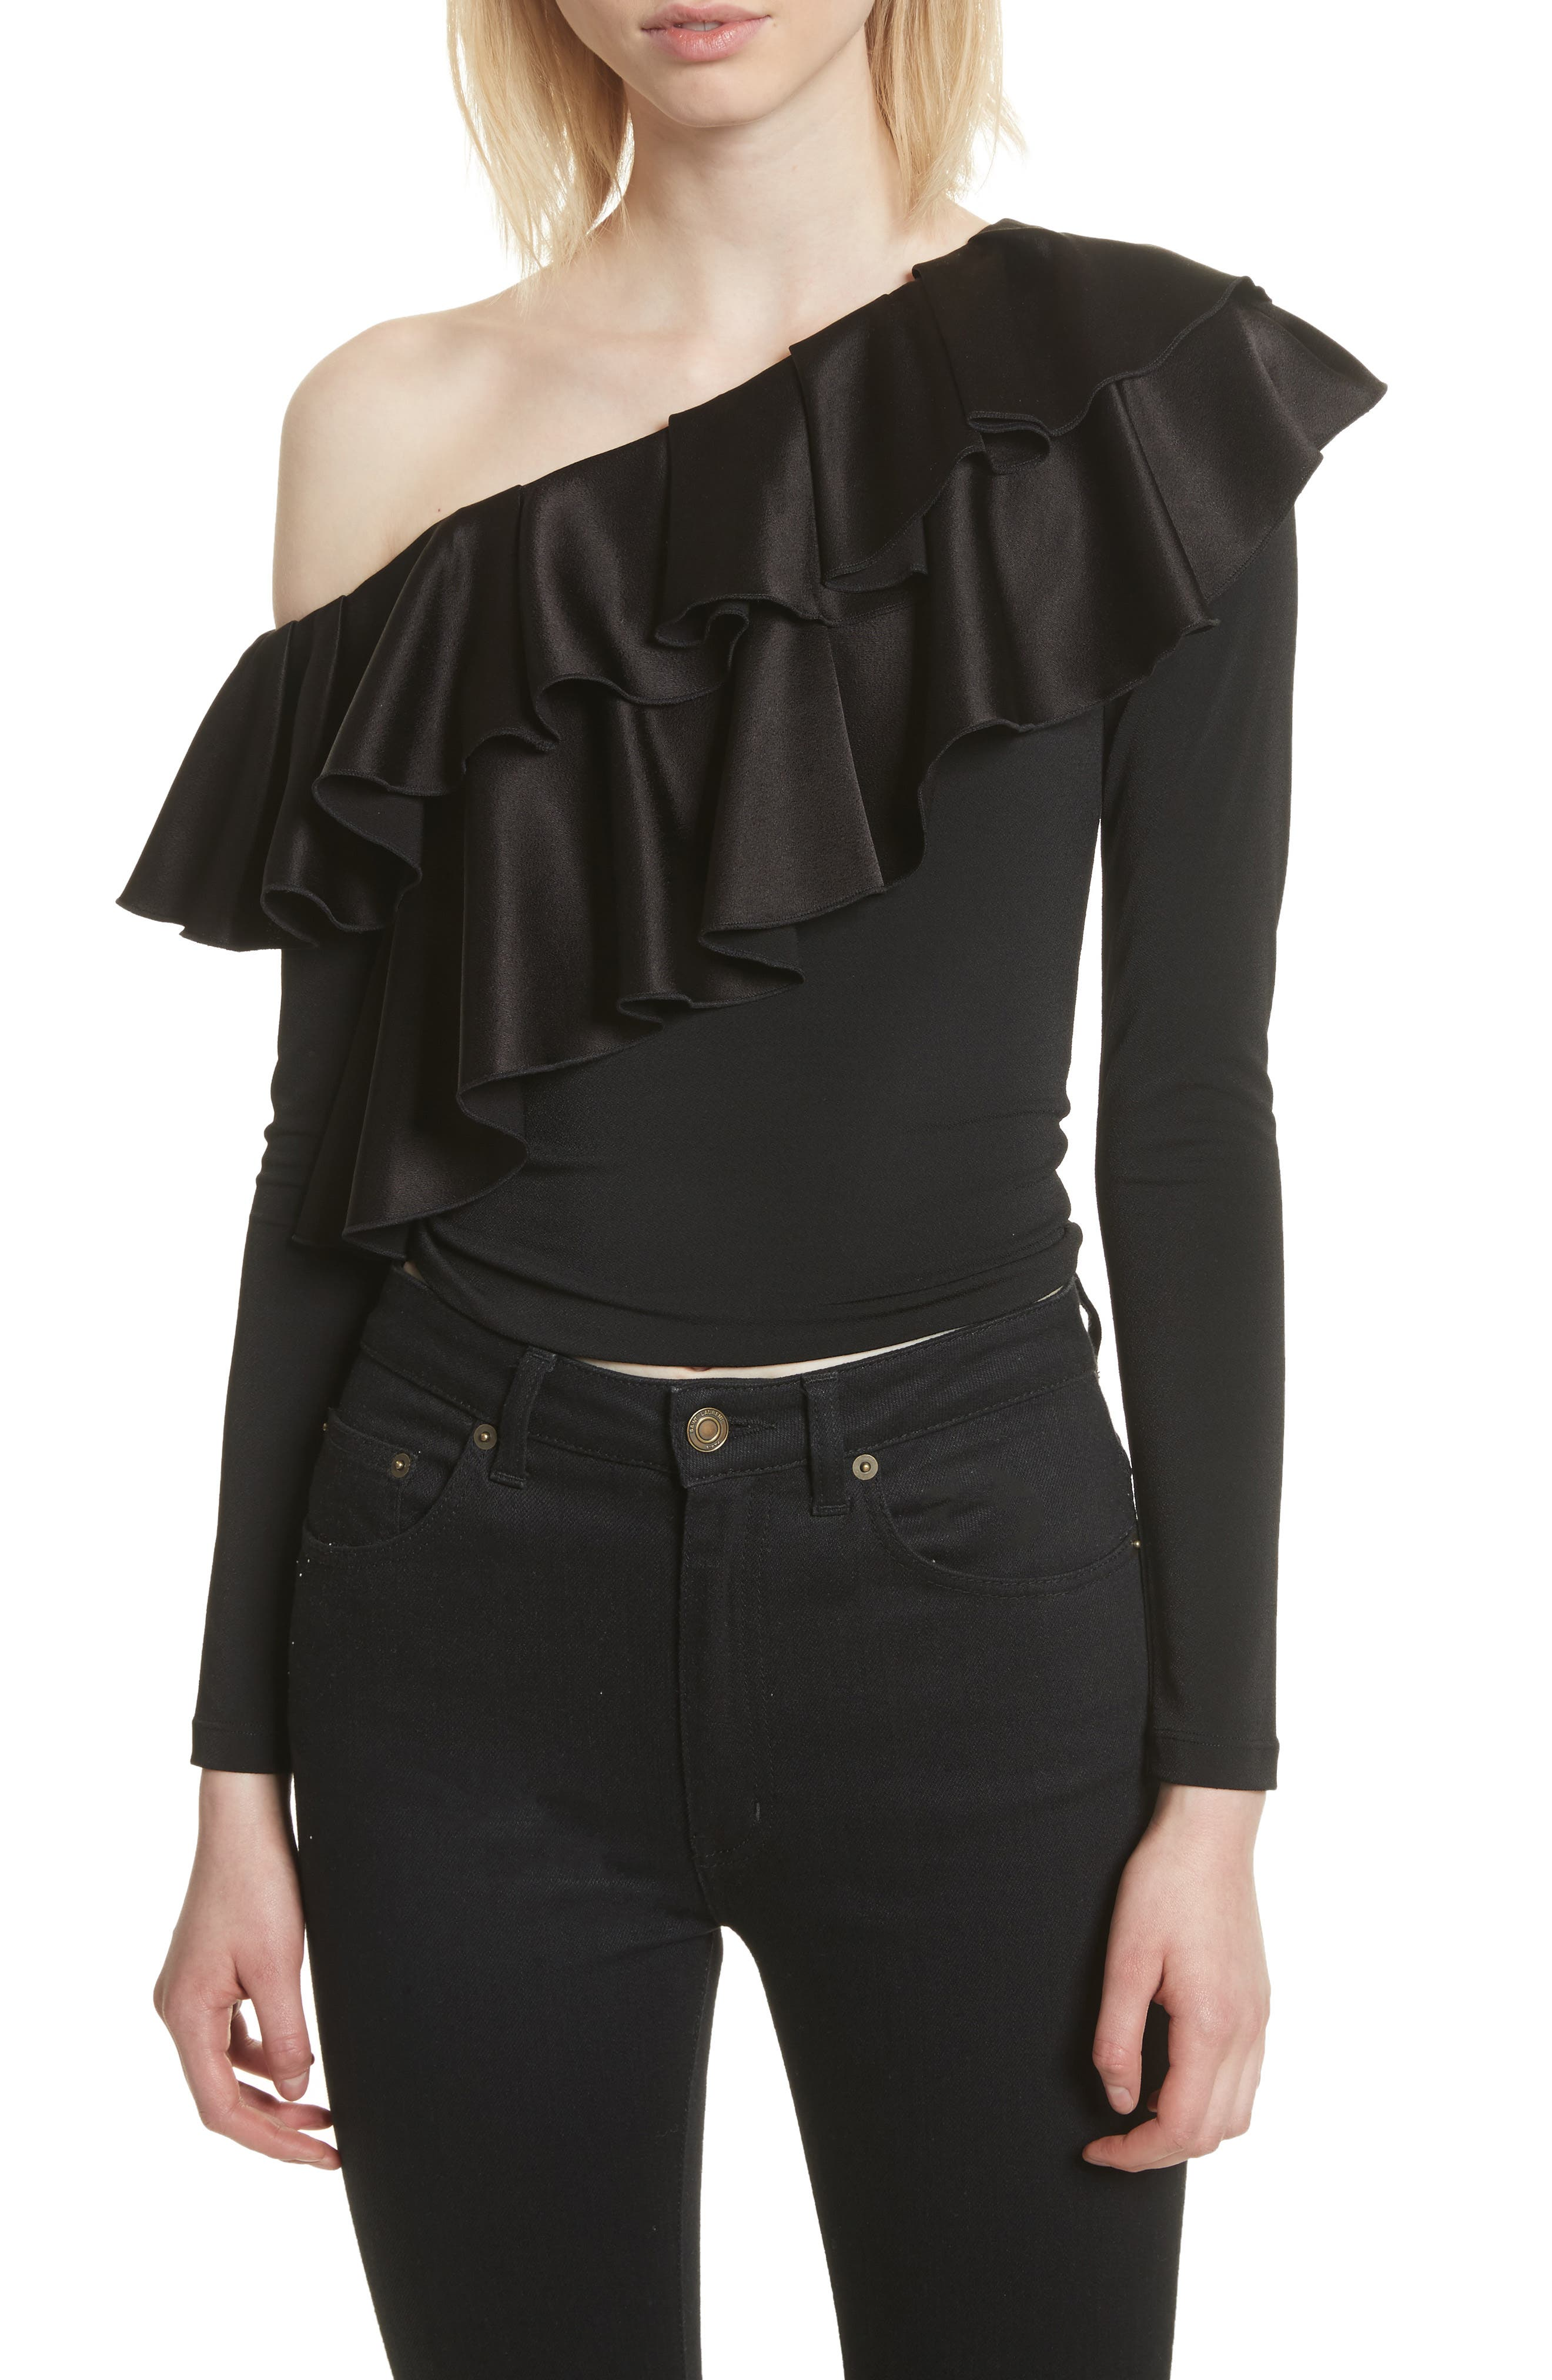 Izzy One-Shoulder Ruffle Crop Top,                         Main,                         color, Black